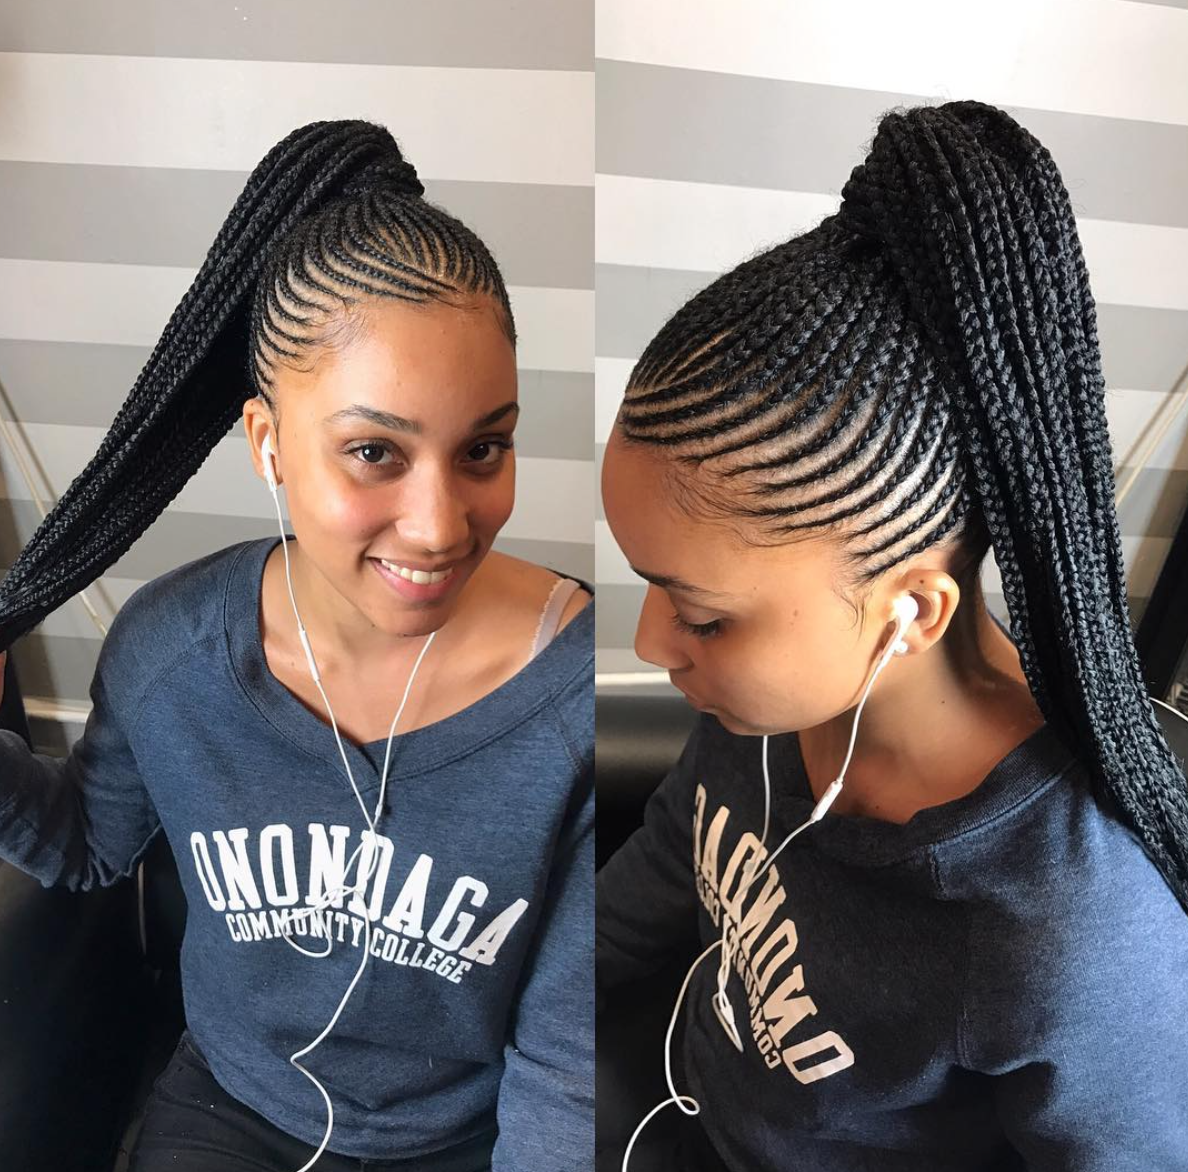 Pin by Black Hair Information - Coils Media Ltd on Braids And Twists ...